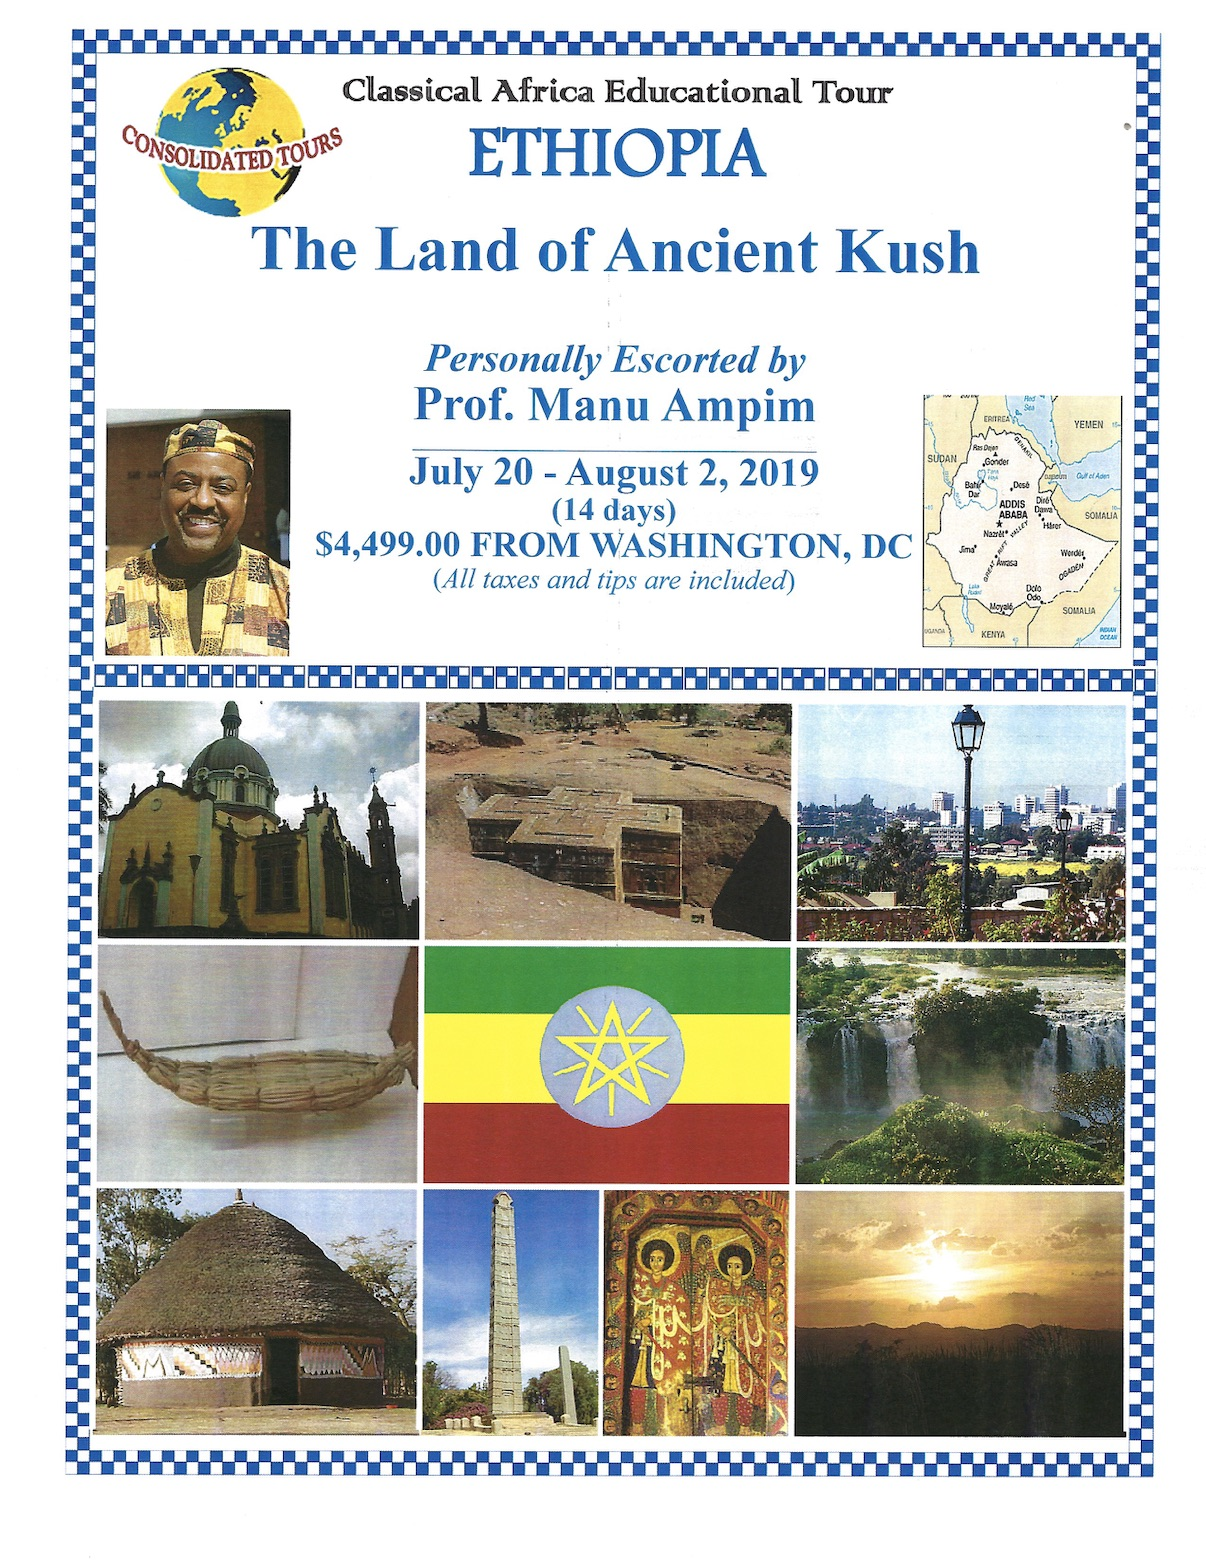 Ethiopia Ancient Kush Tour 2019 pg1